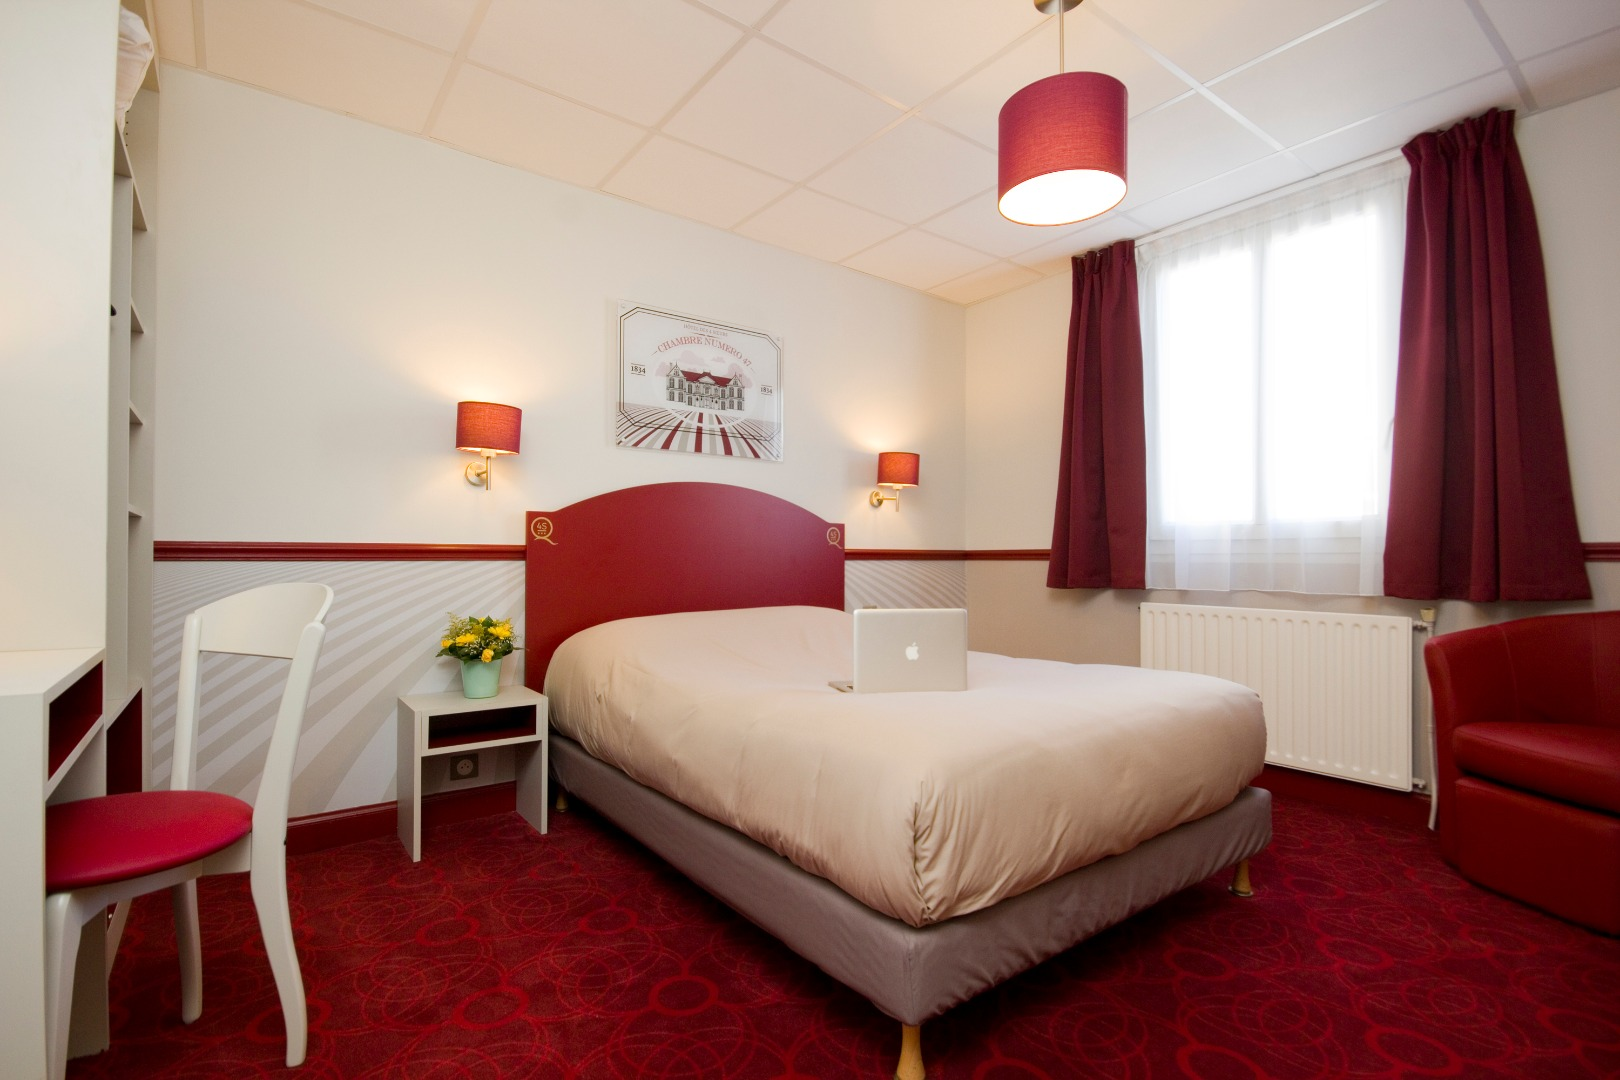 Hotel des 4 soeurs a charming hotel in bordeaux centre for Hotels bordeaux